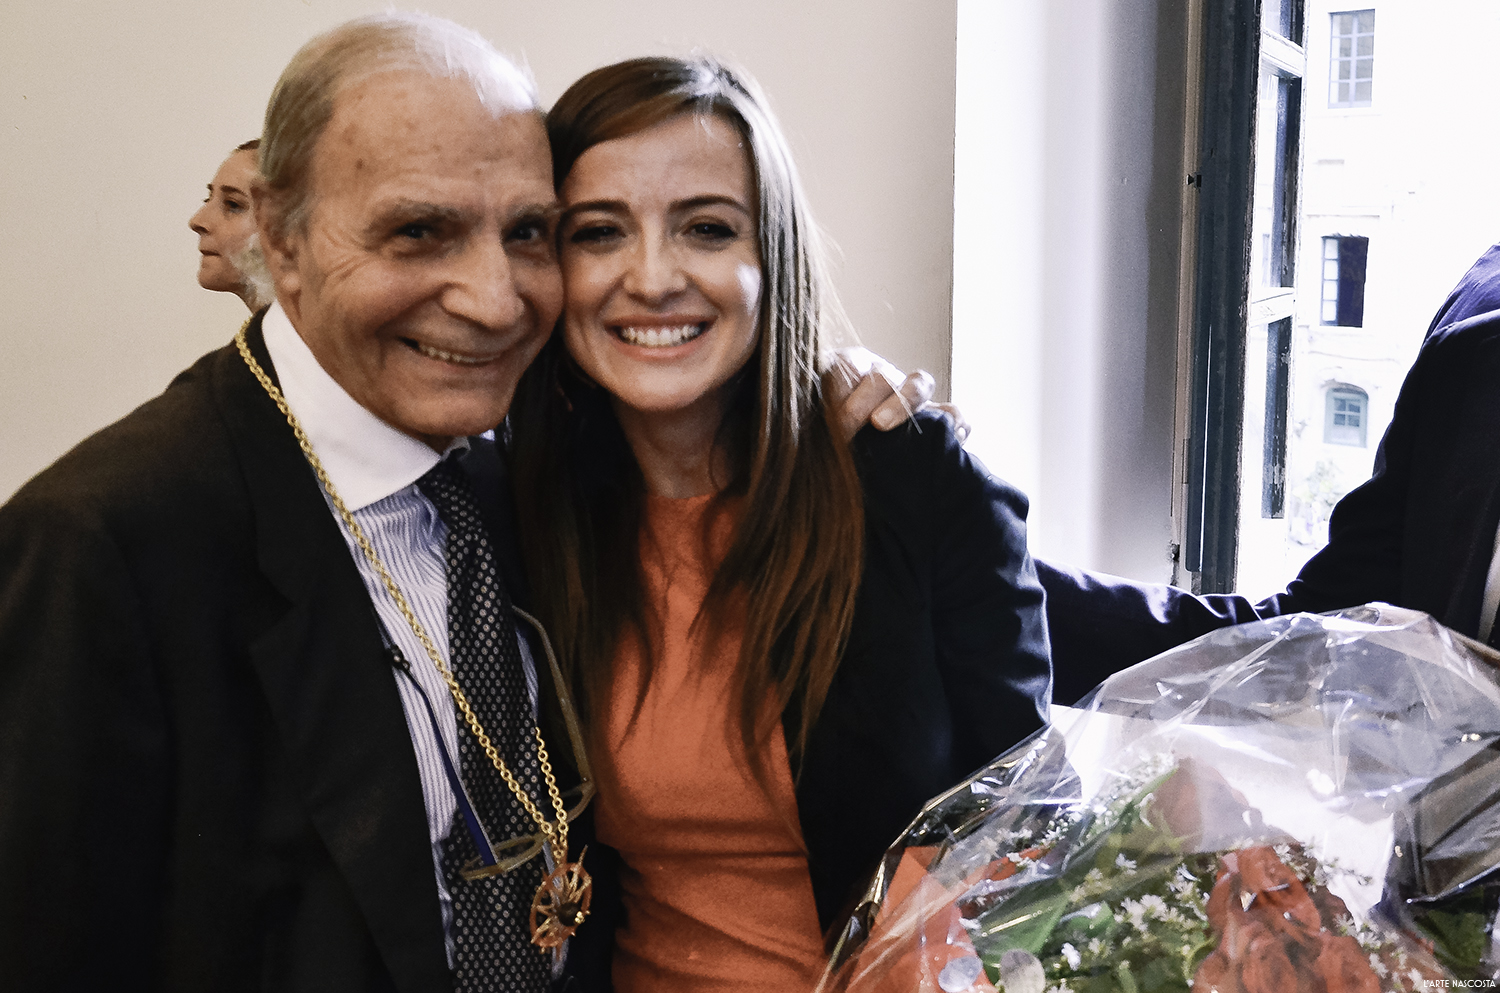 Mario and Roberta after Mario was awarded the  Magister Artis star.